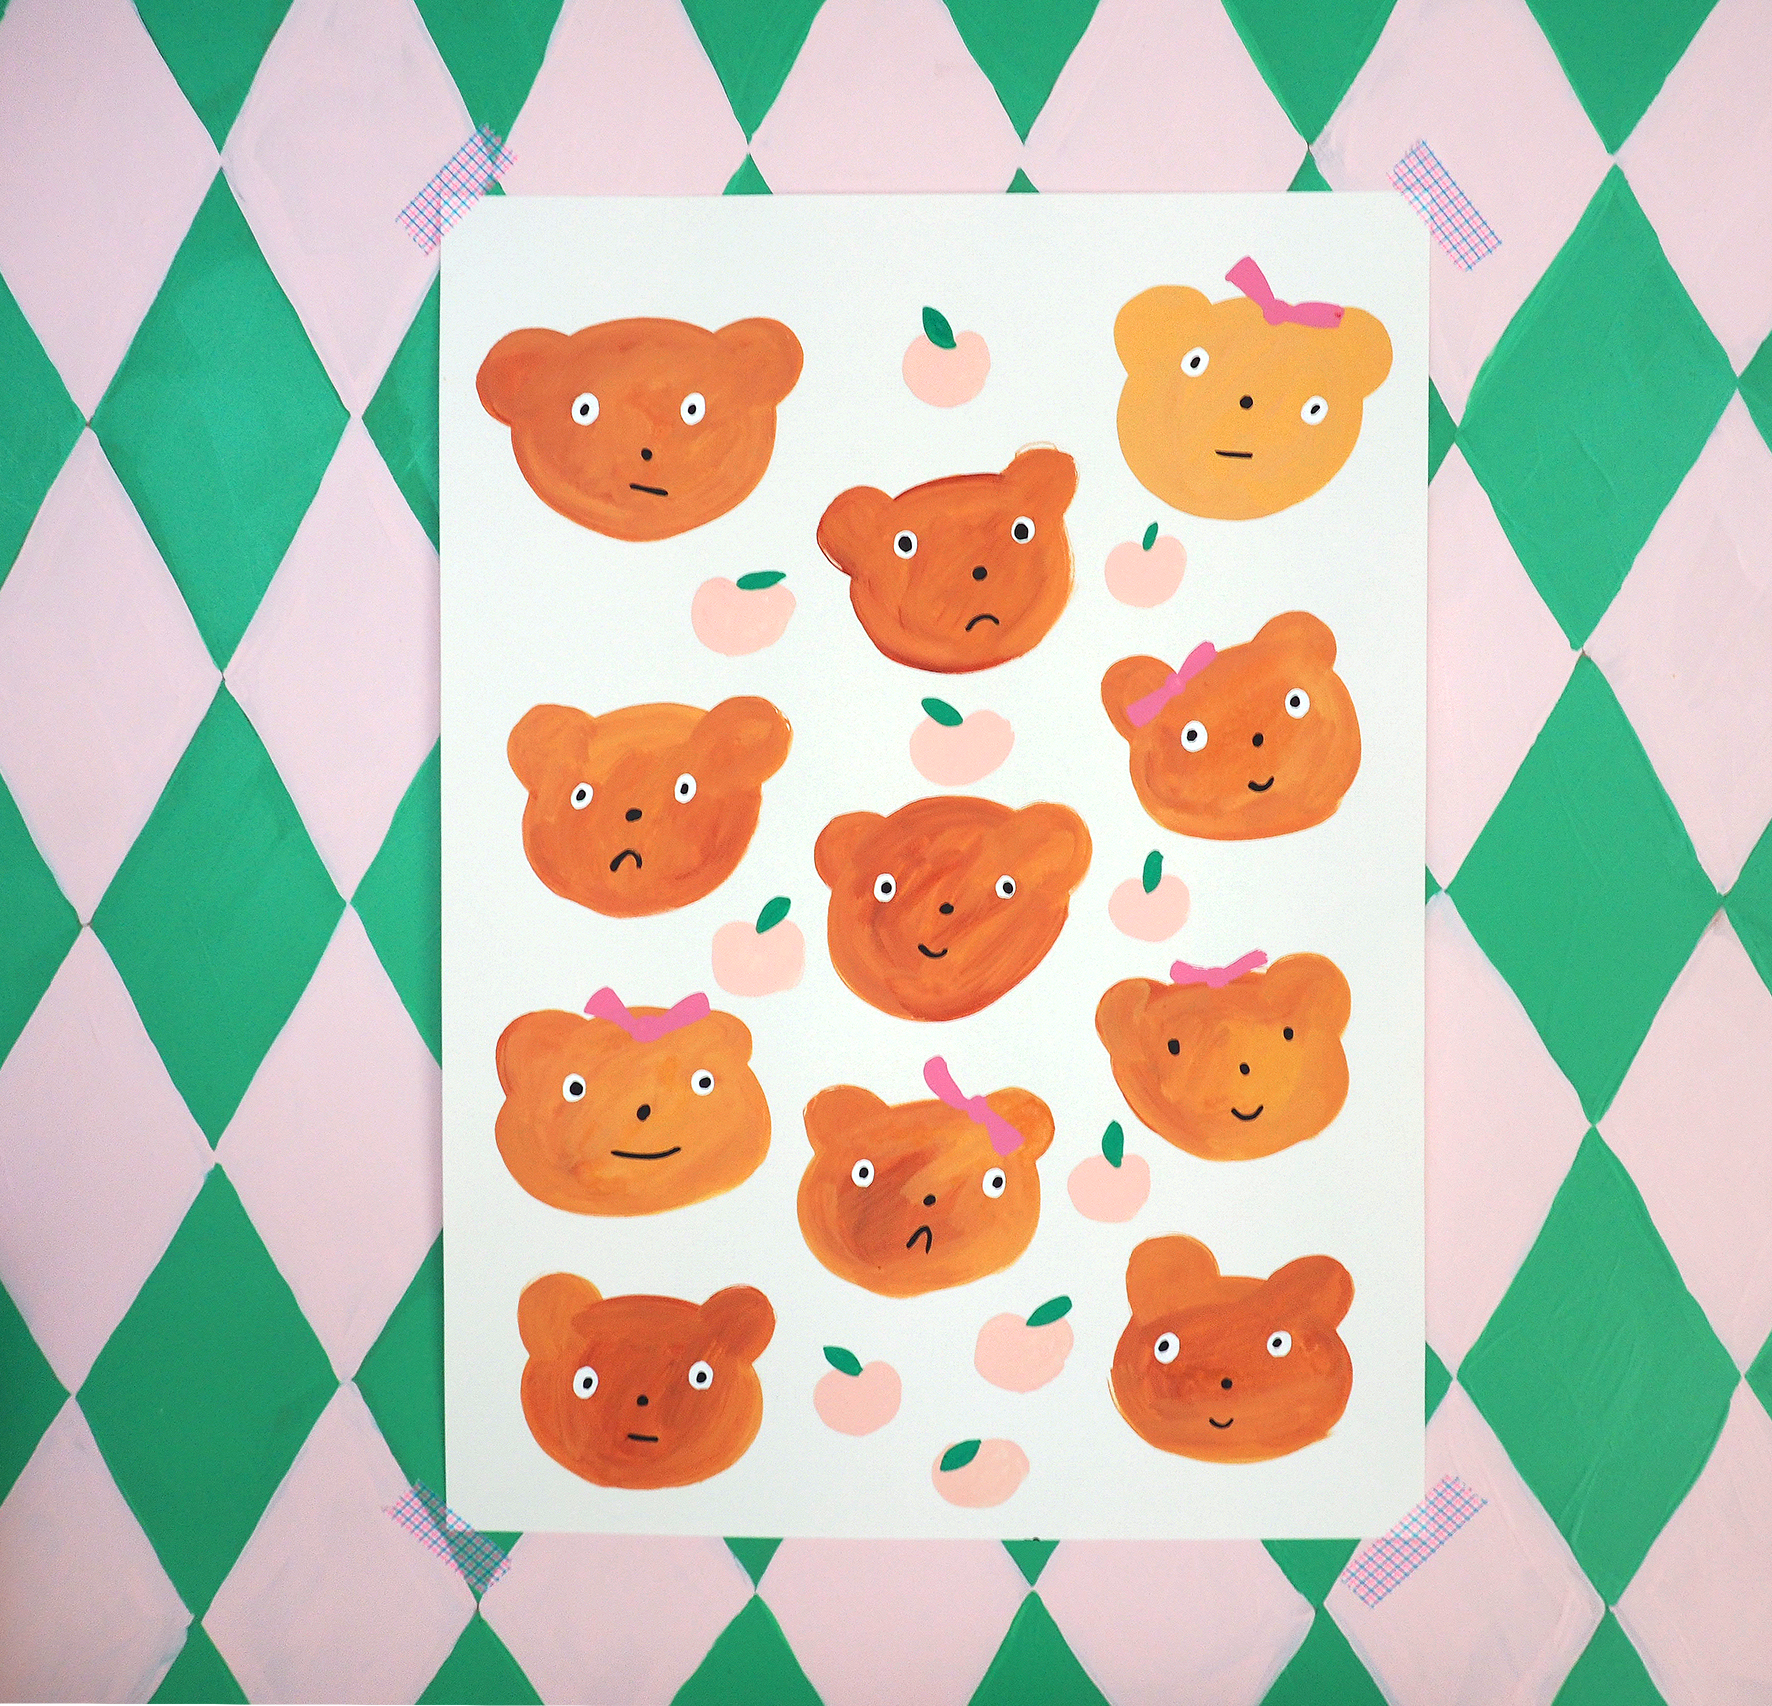 pey chi print with bears and peaches